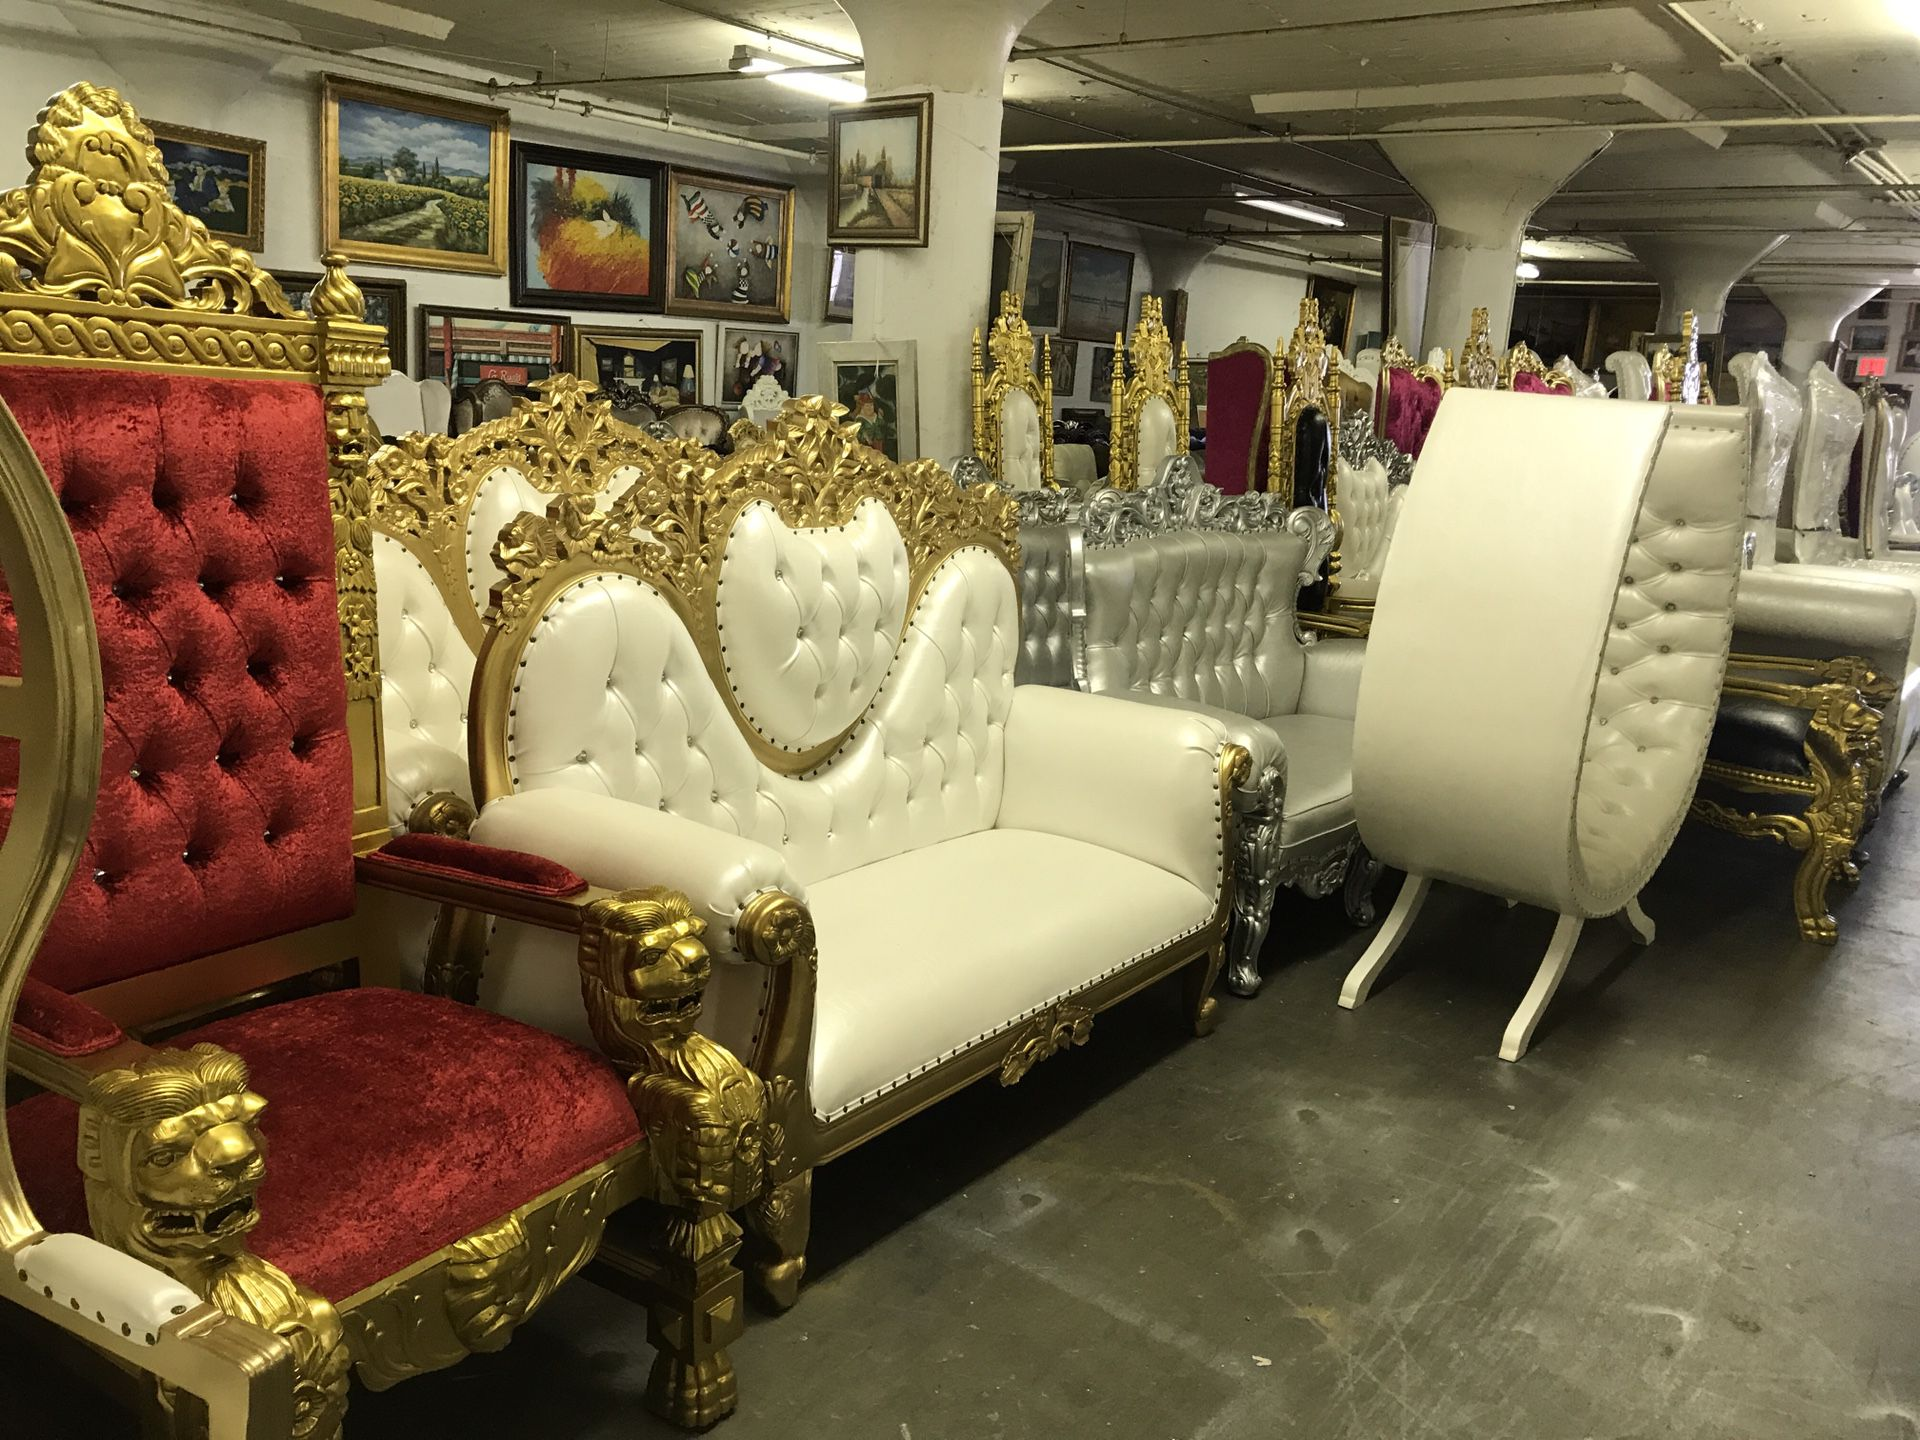 Beautiful throne chair.$1800. Best offer